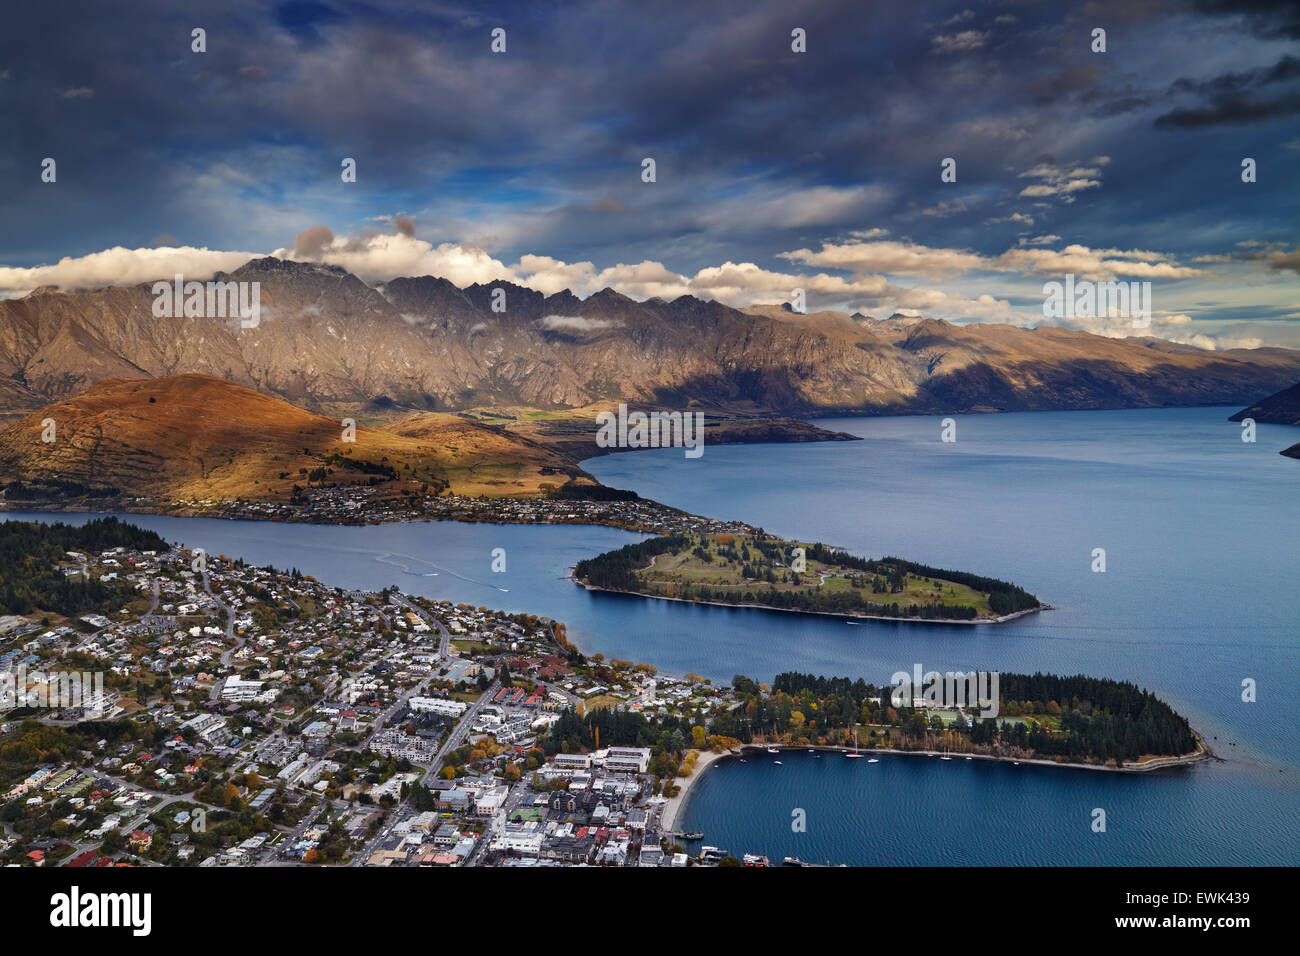 View of Queenstown, Wakatipu Lake and Remarkables Mountains, New Zealand - Stock Image